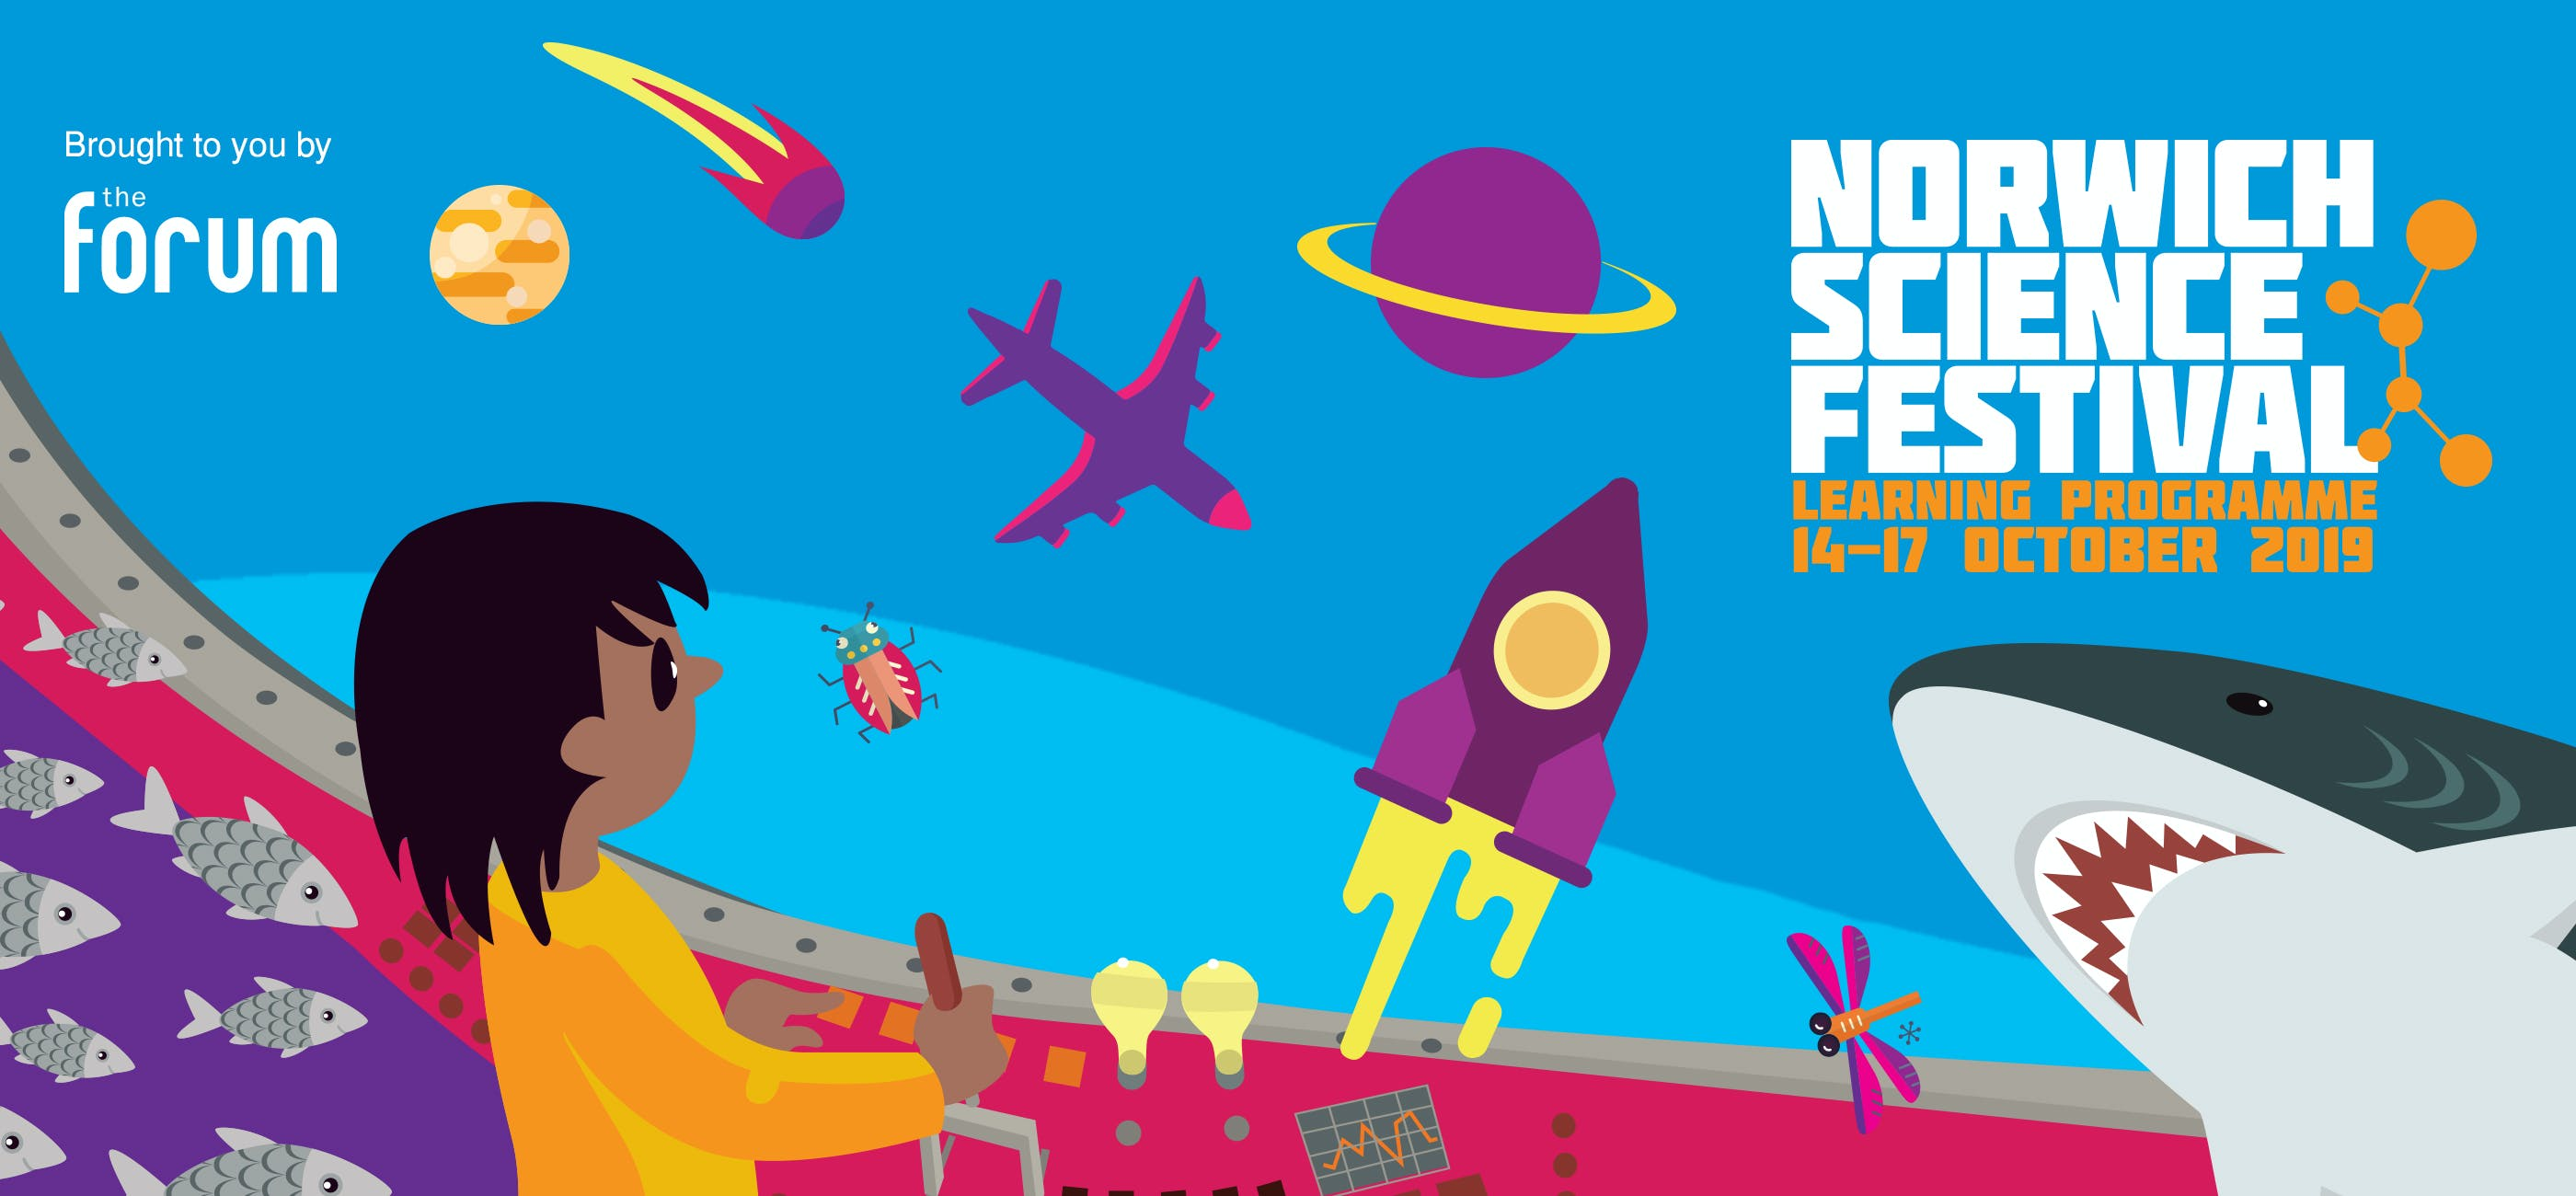 Norwich Science Festival 2019 Learning Programme